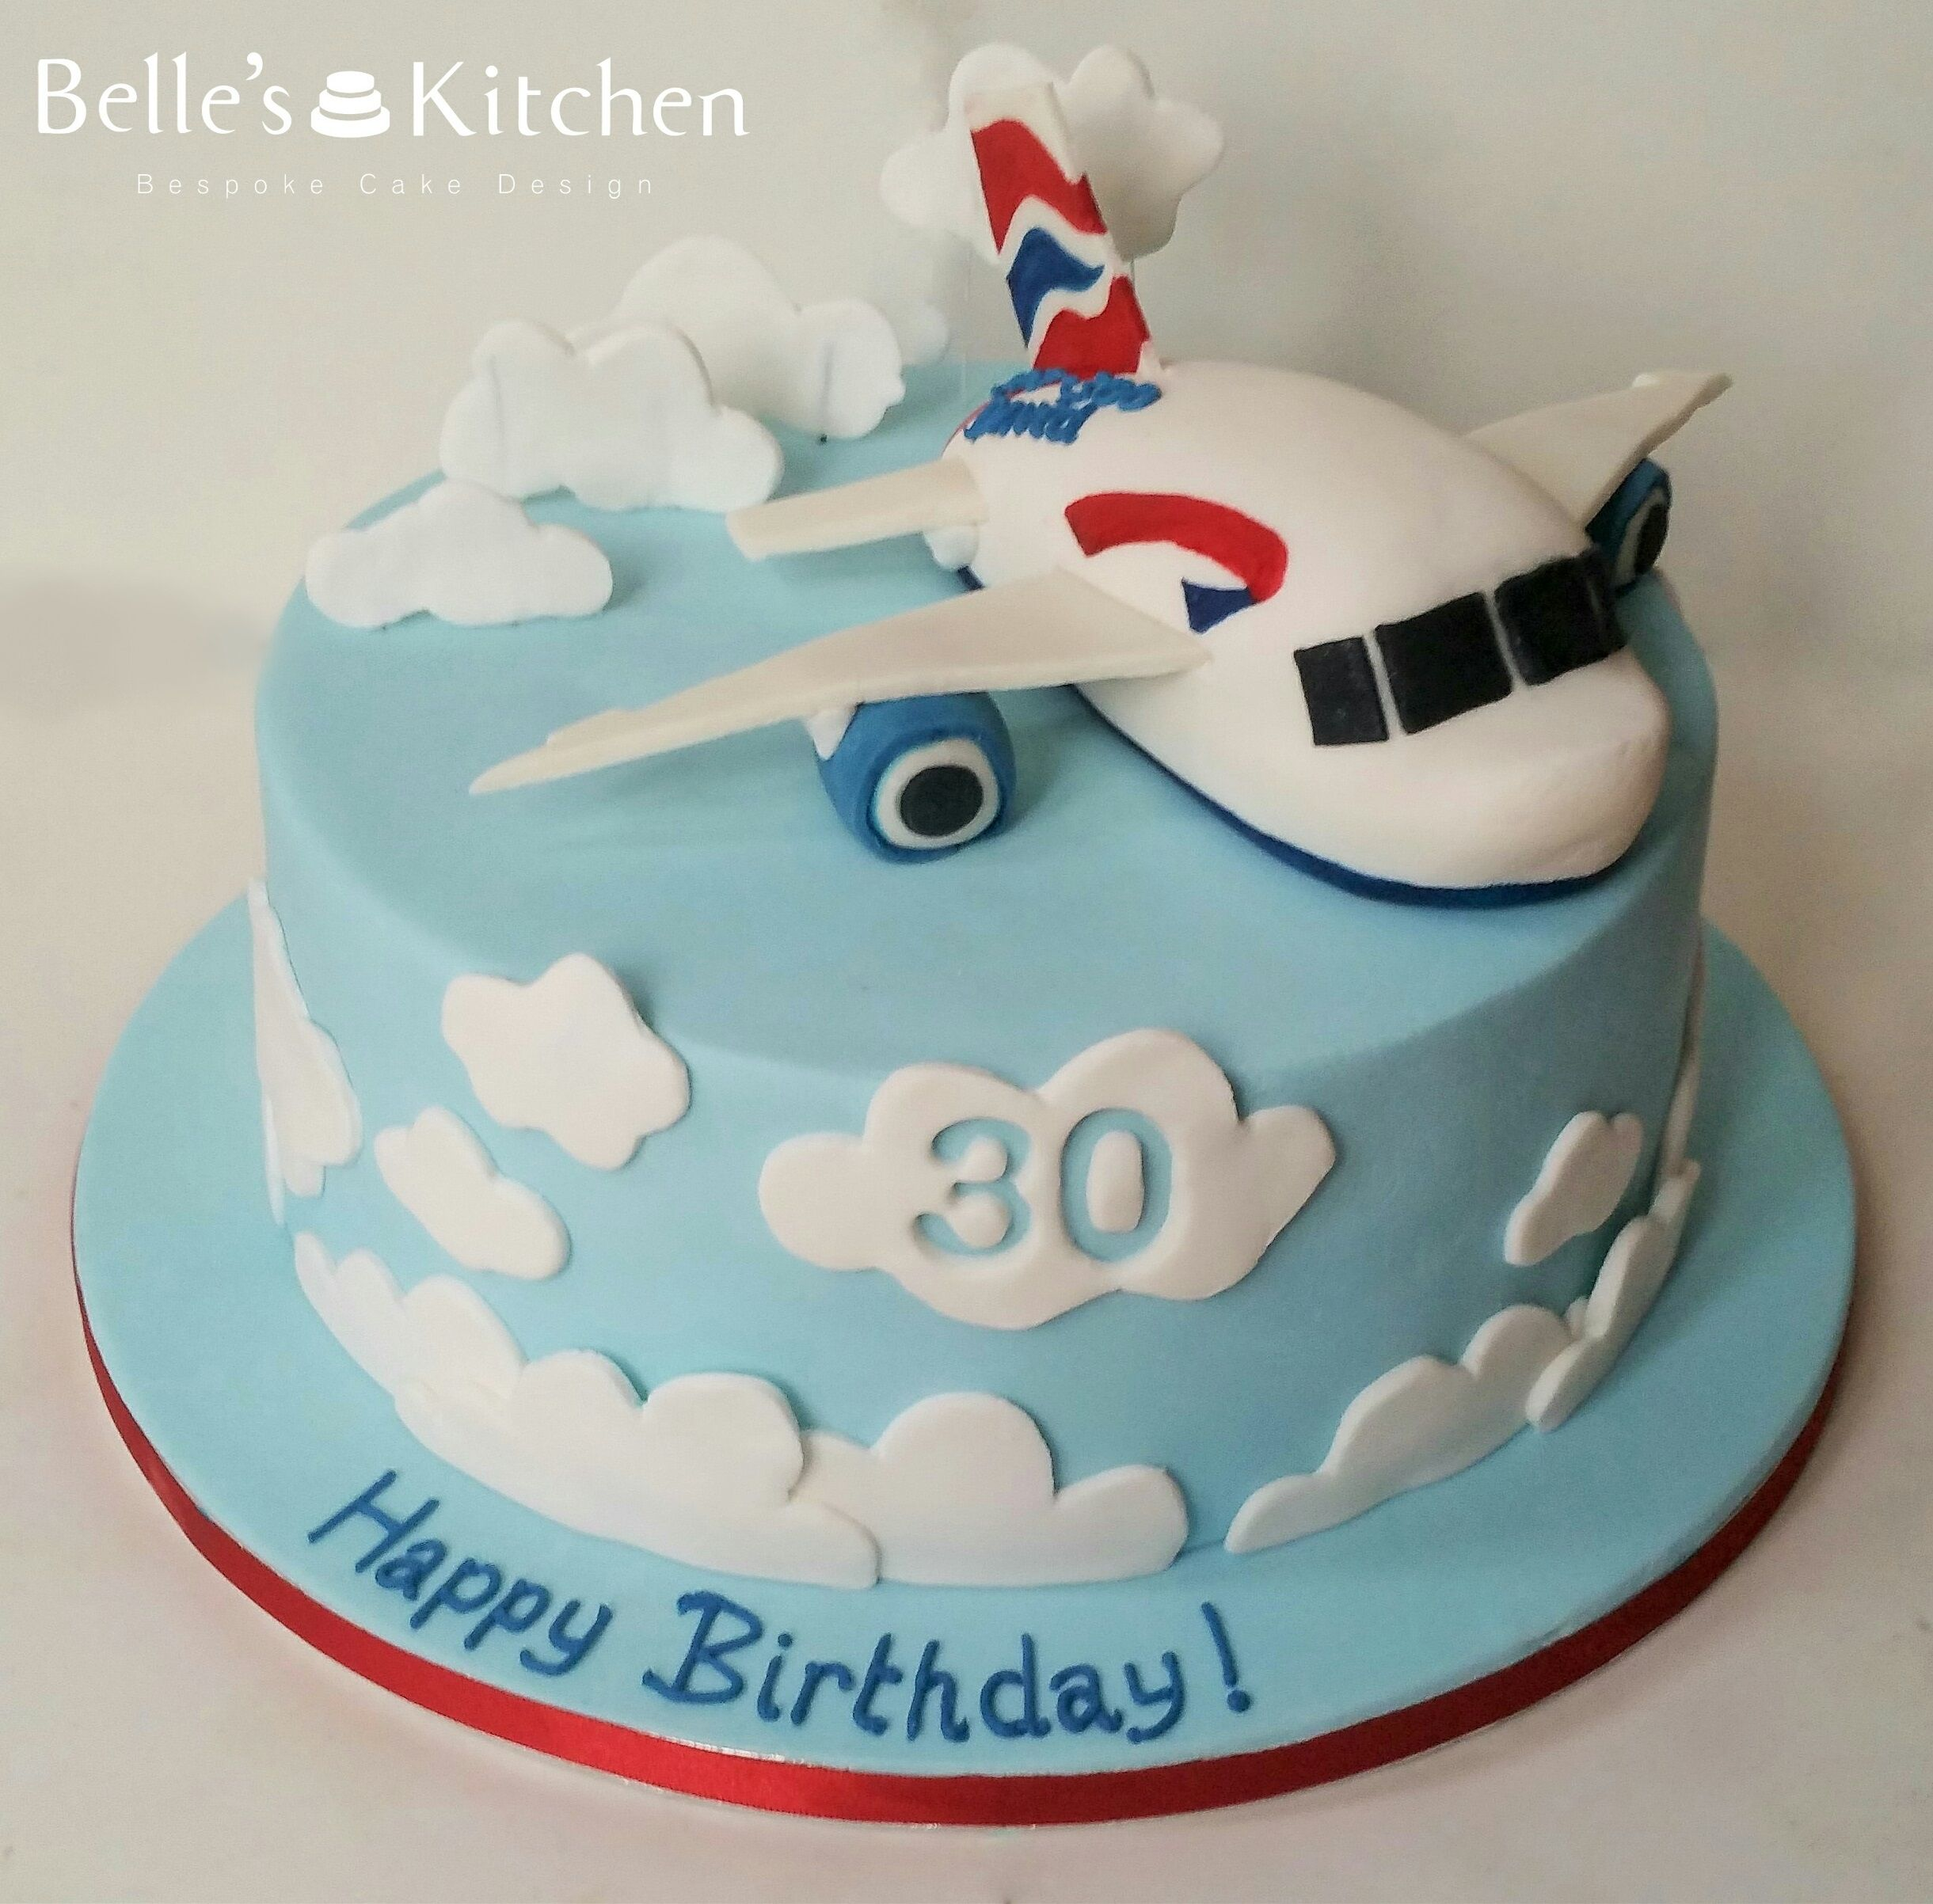 Tremendous Plane Cake For A Pilot Turning 30 With Images Planes Birthday Funny Birthday Cards Online Barepcheapnameinfo